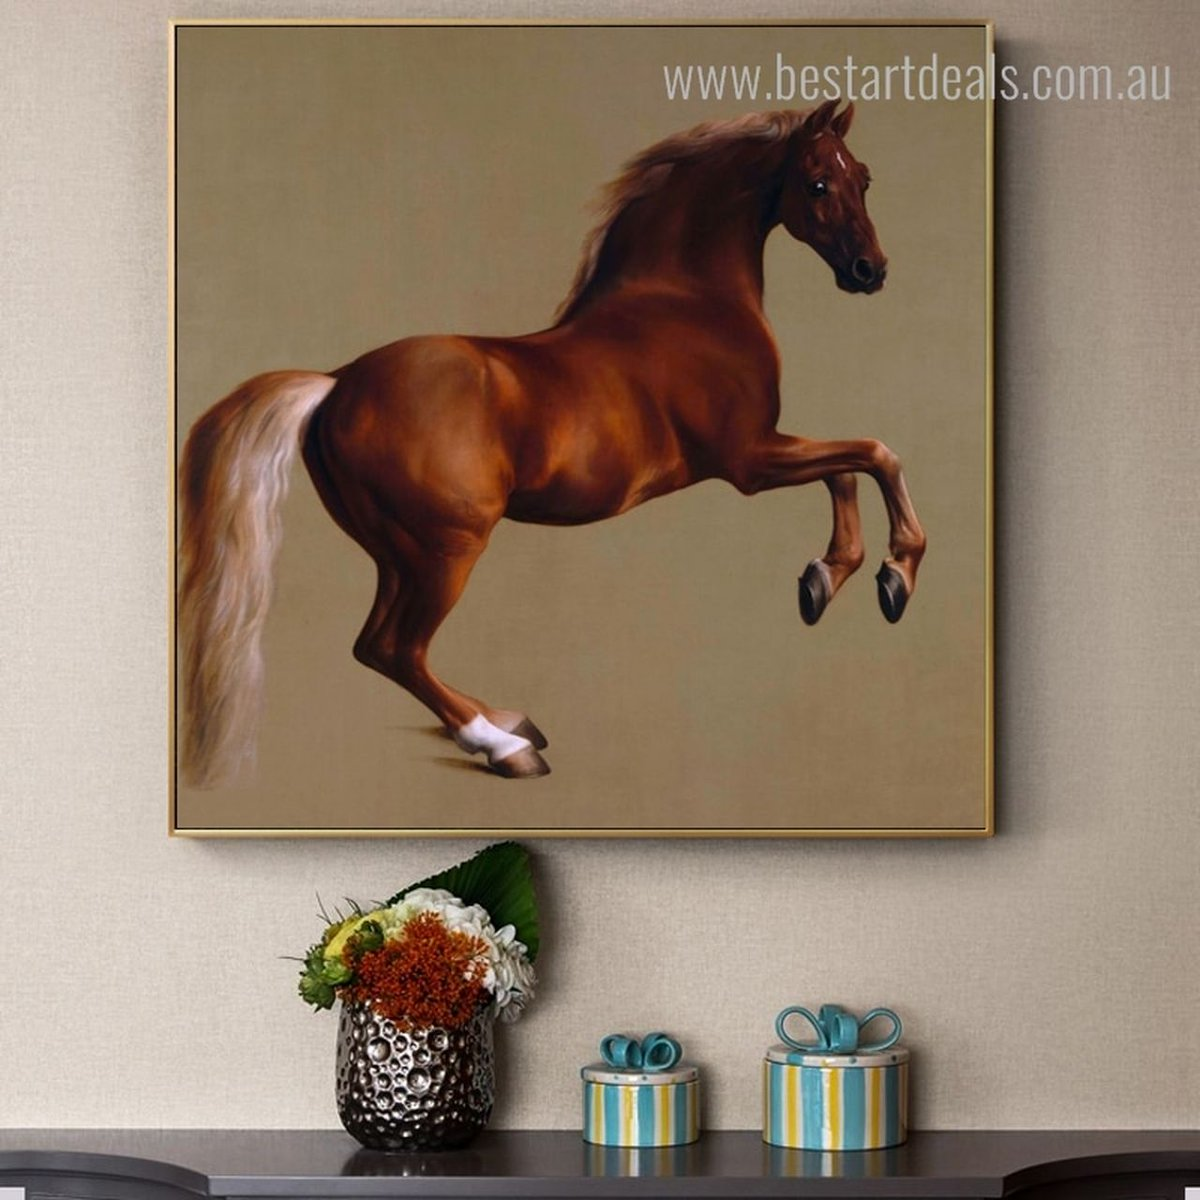 Famous Artist George Stubbs ARA Whistlejacket Canvas Painting Print for Sale at Affordable Price. We Sell Artwork Online Worldwide!  https://t.co/Wnj4ugyaLP  #artistic #artcollector https://t.co/MPkJi7M0gr